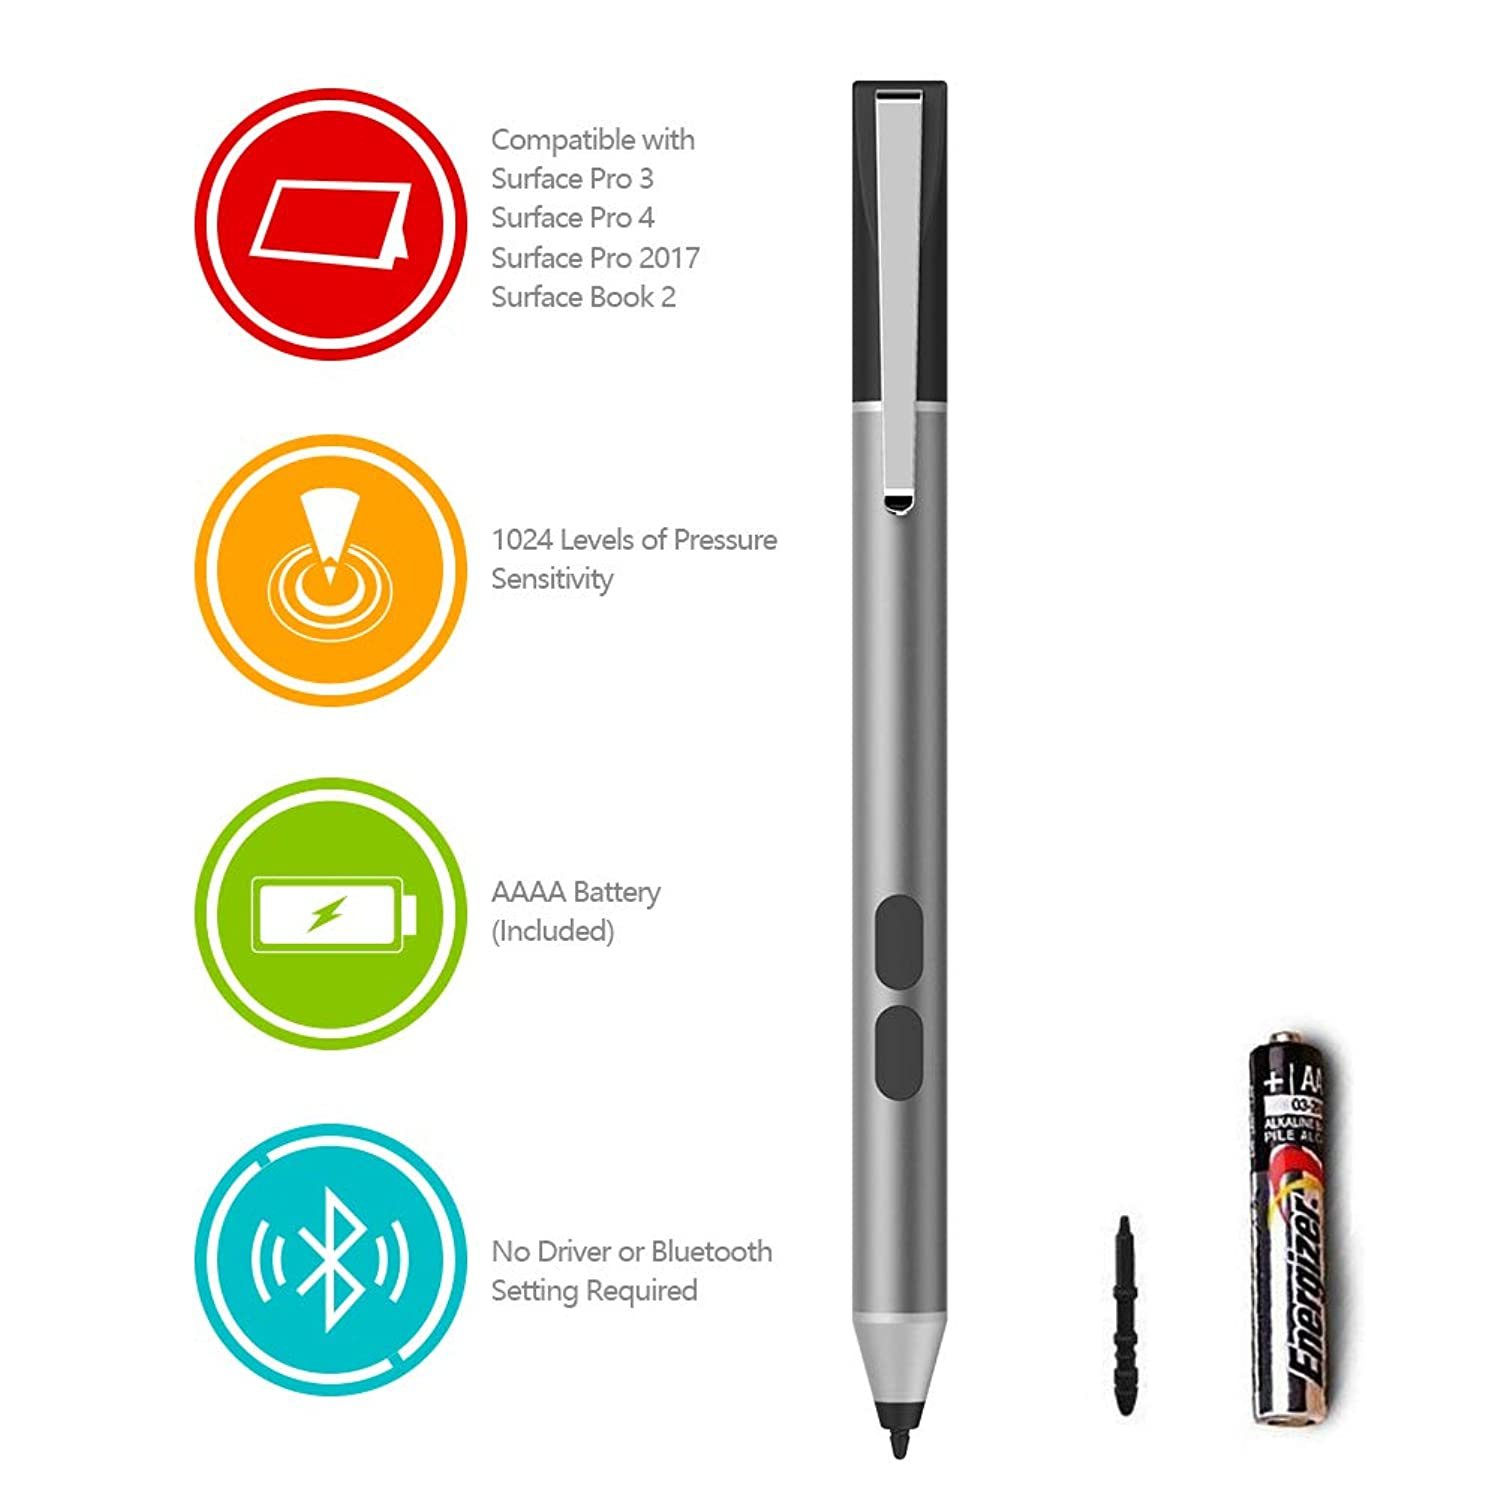 Surface Pen for Microsoft Surface Book Surface Pro 3 Pro 4 Pro 5 Pro 6 Surface Go Surface Laptop 2 with 1024 Level Pressure Sensitivity, AAAA Battery & 2 Surface Pen Tips, Support Palm Rejection